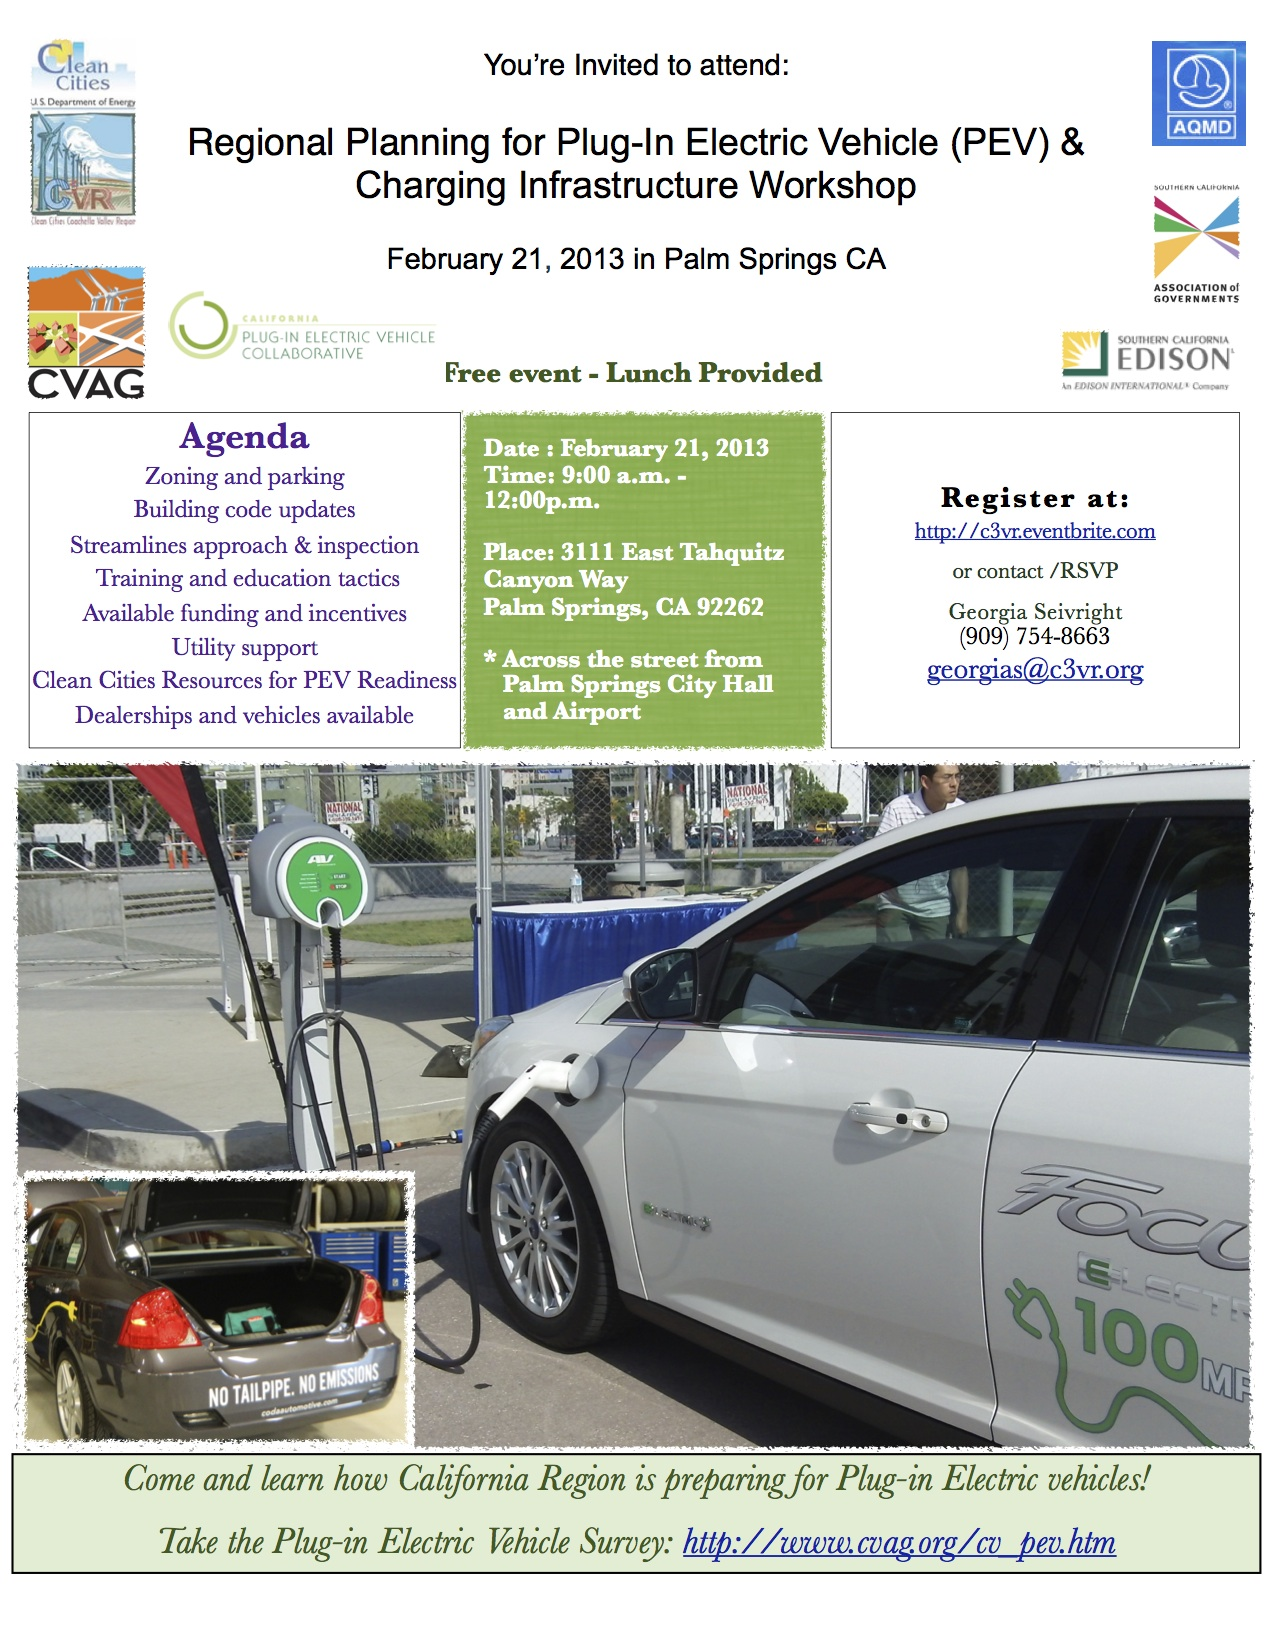 Regional Planning for Plug-in Electric Vehicle